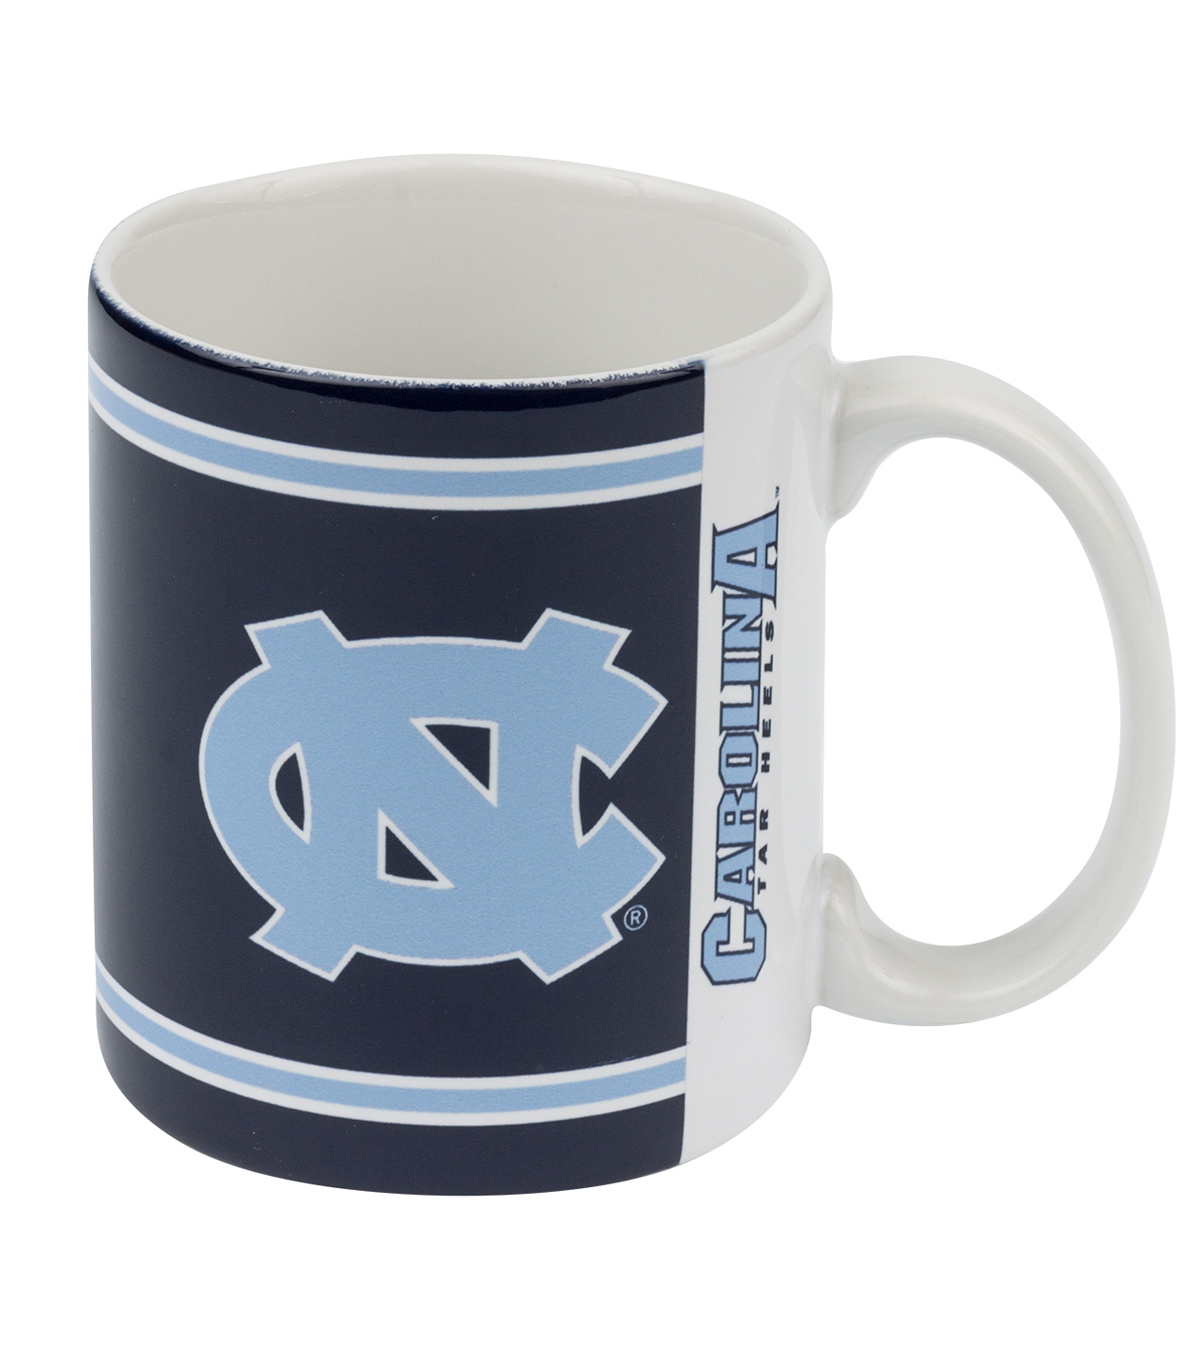 University of North Carolina Tarheels Coffee Mug